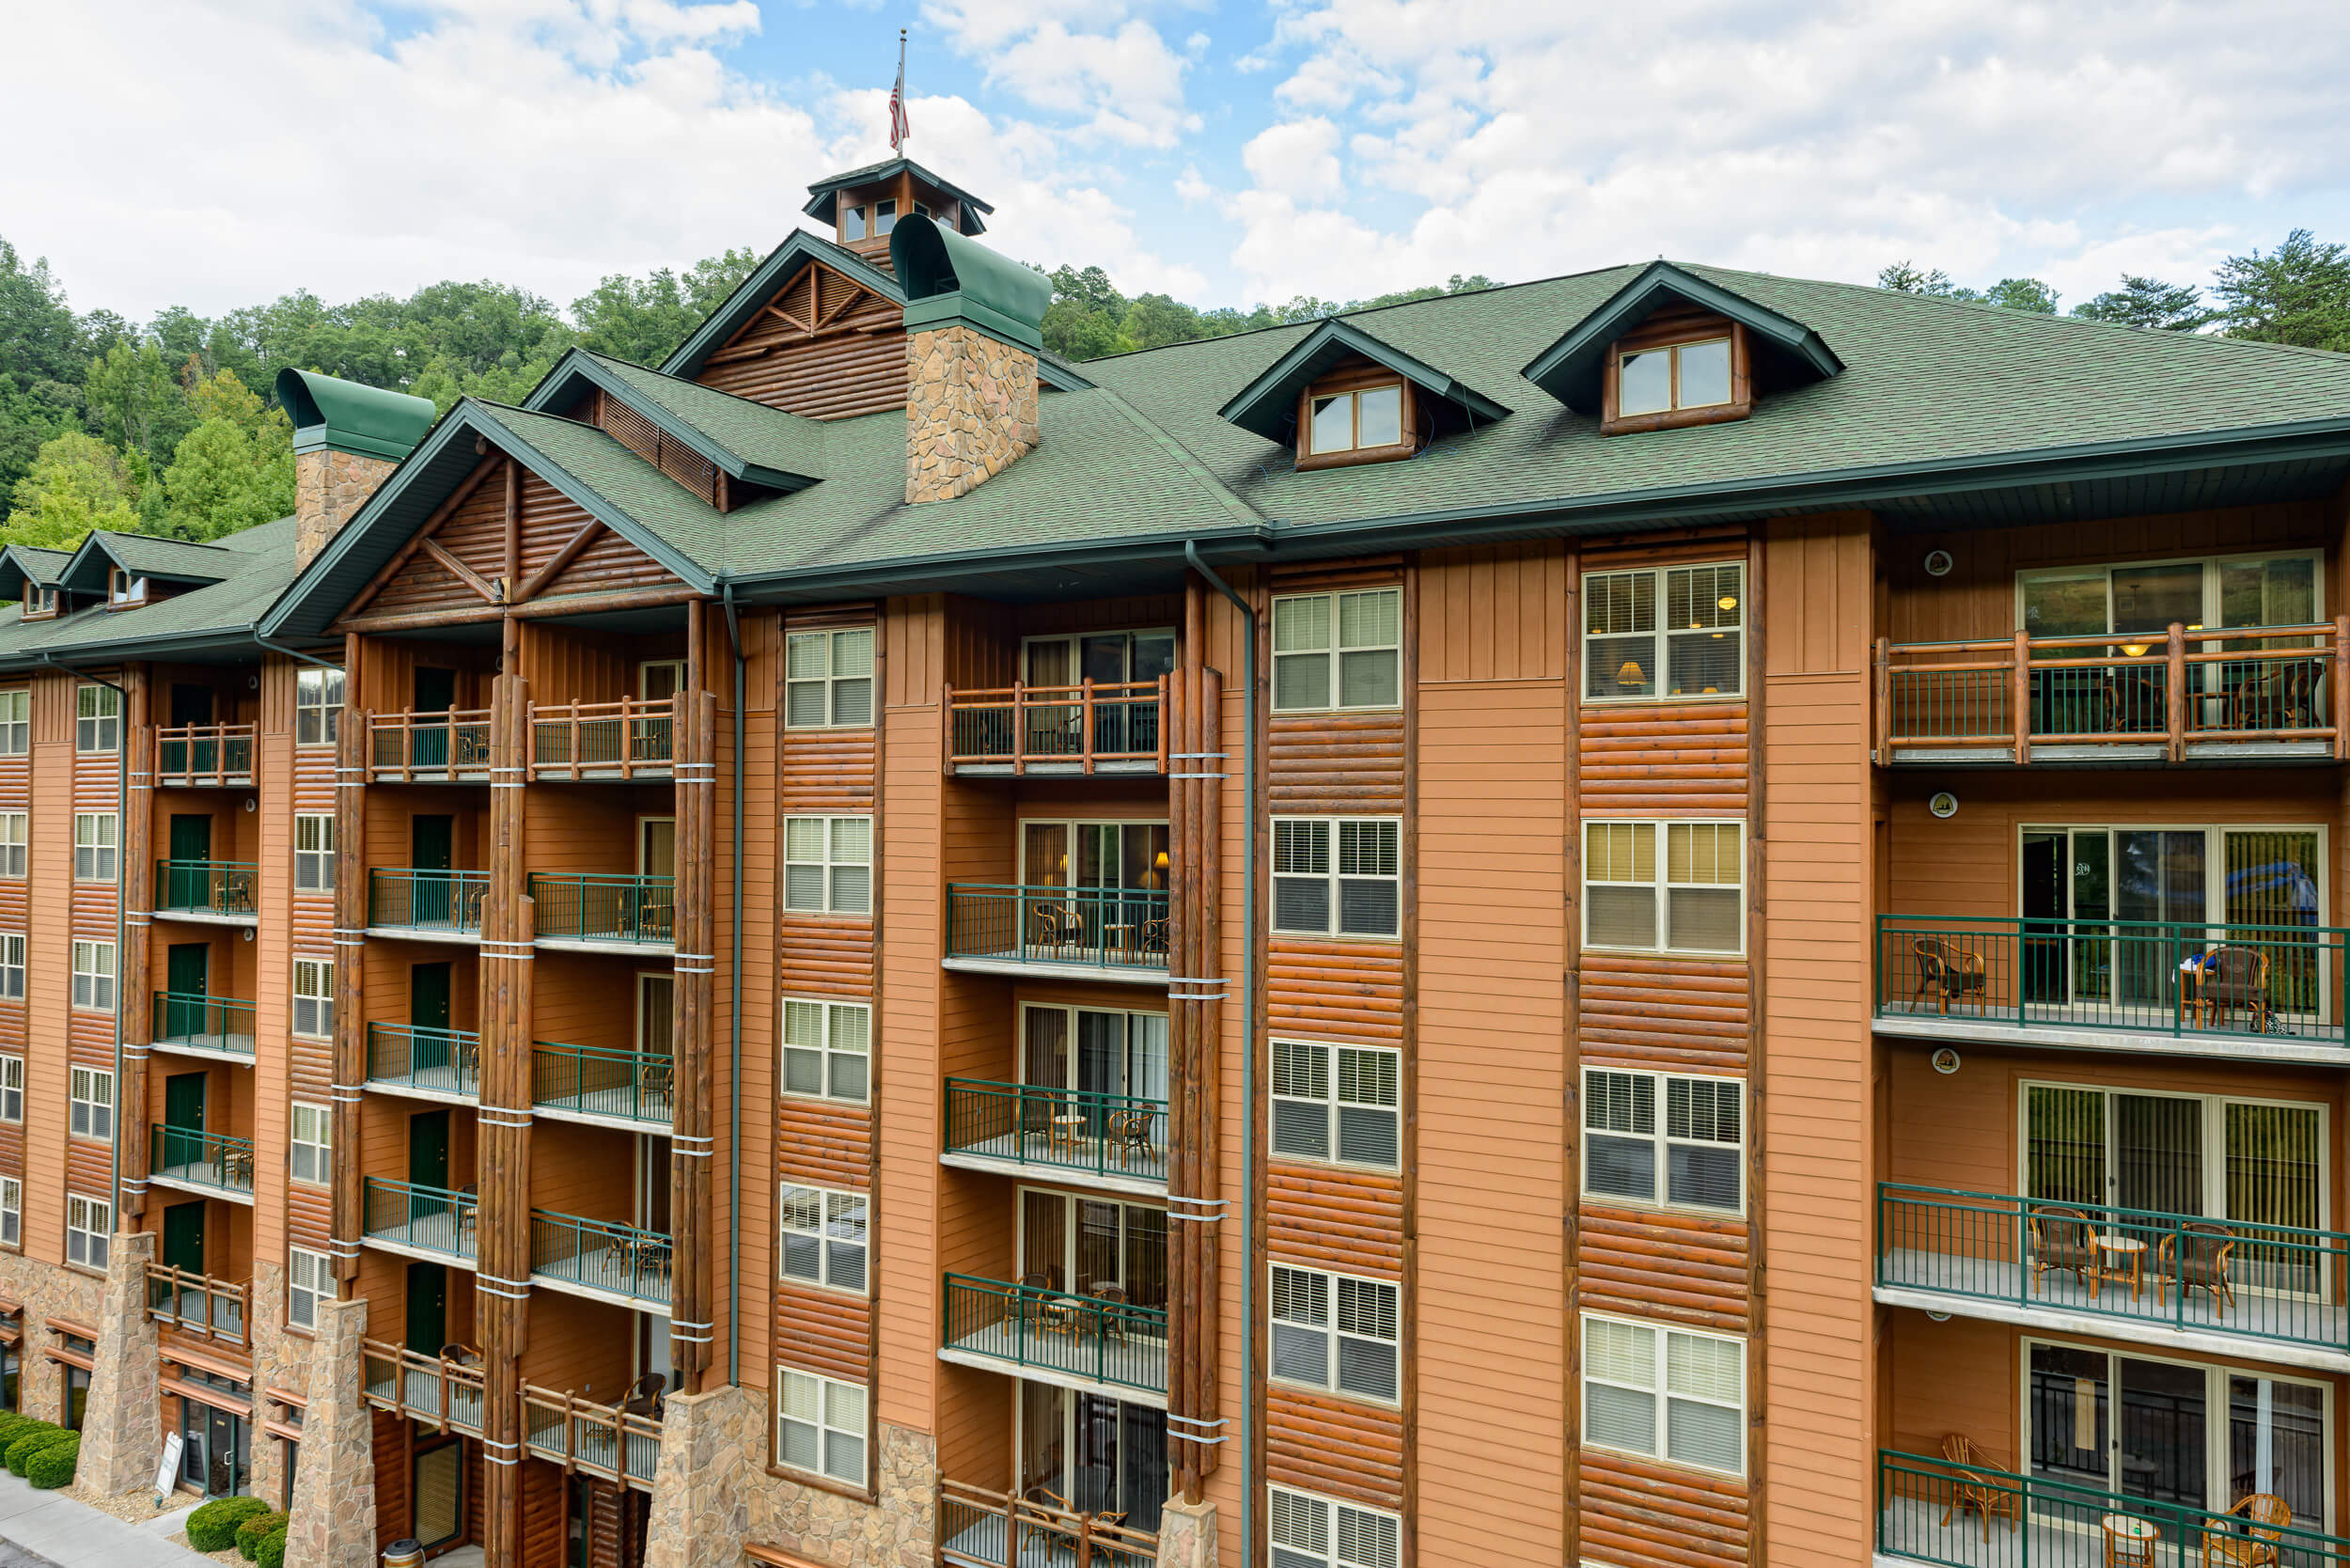 Smoky Mountain Resort Exterior | Westgate Smoky Mountain Resort & Spa | Westgate Resorts